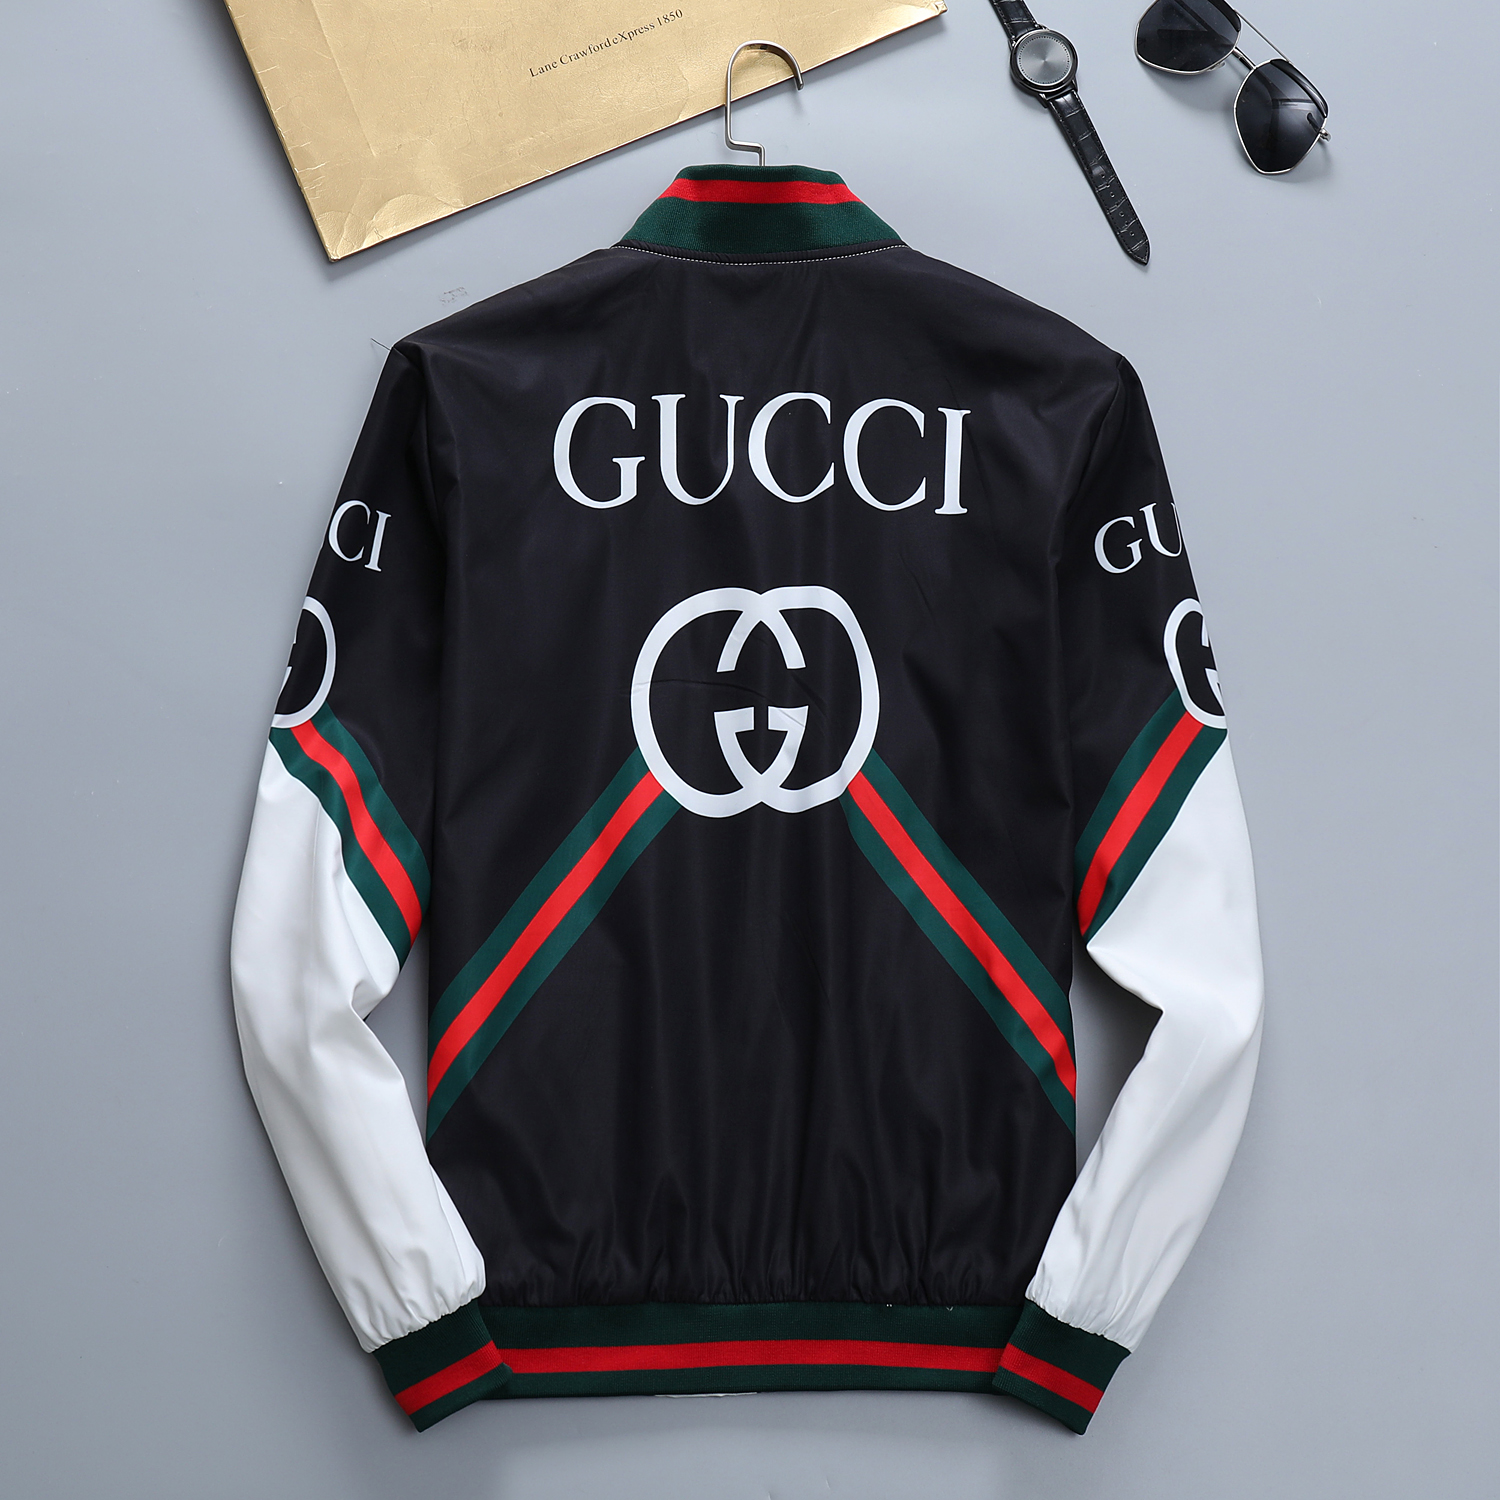 cheap 2020 gucci jackets for 229962 43 fb229962